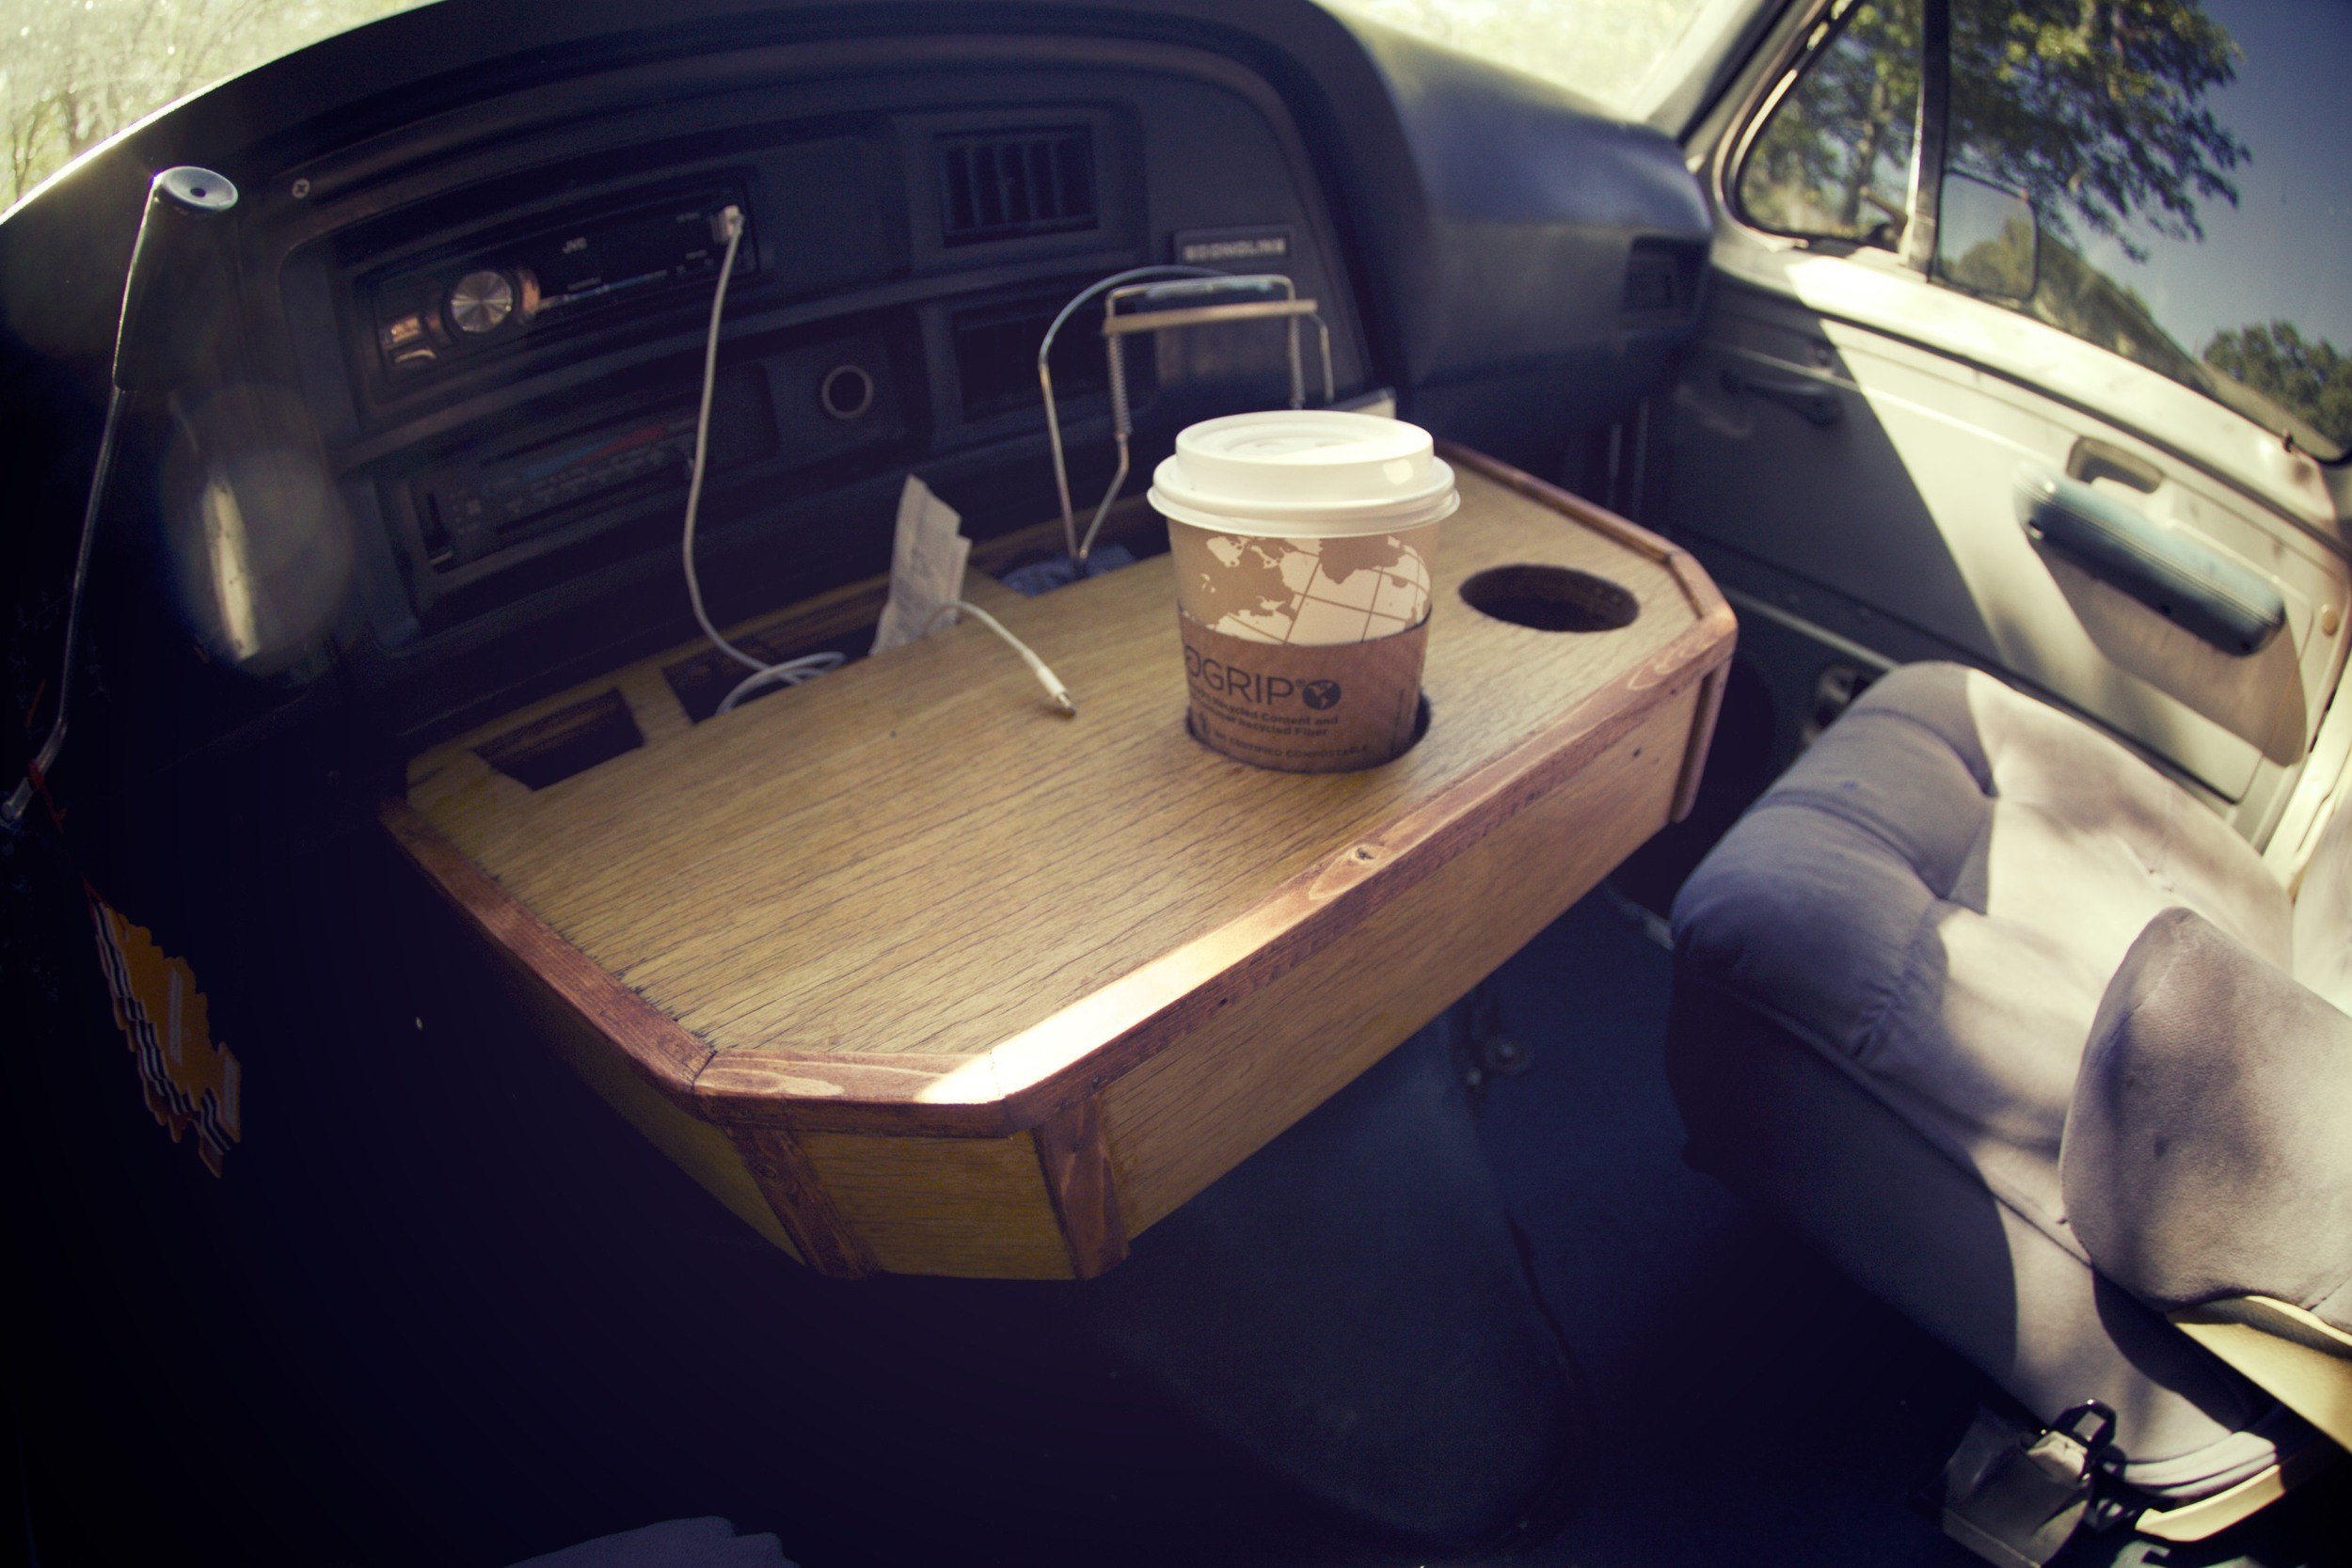 This is one of my favorite pieces in the van. This is a custom-designed and built unit. The wood used to build it was from a desk that my Grandaddy built for my father years ago. Such an awesome piece of history for Thorondor.